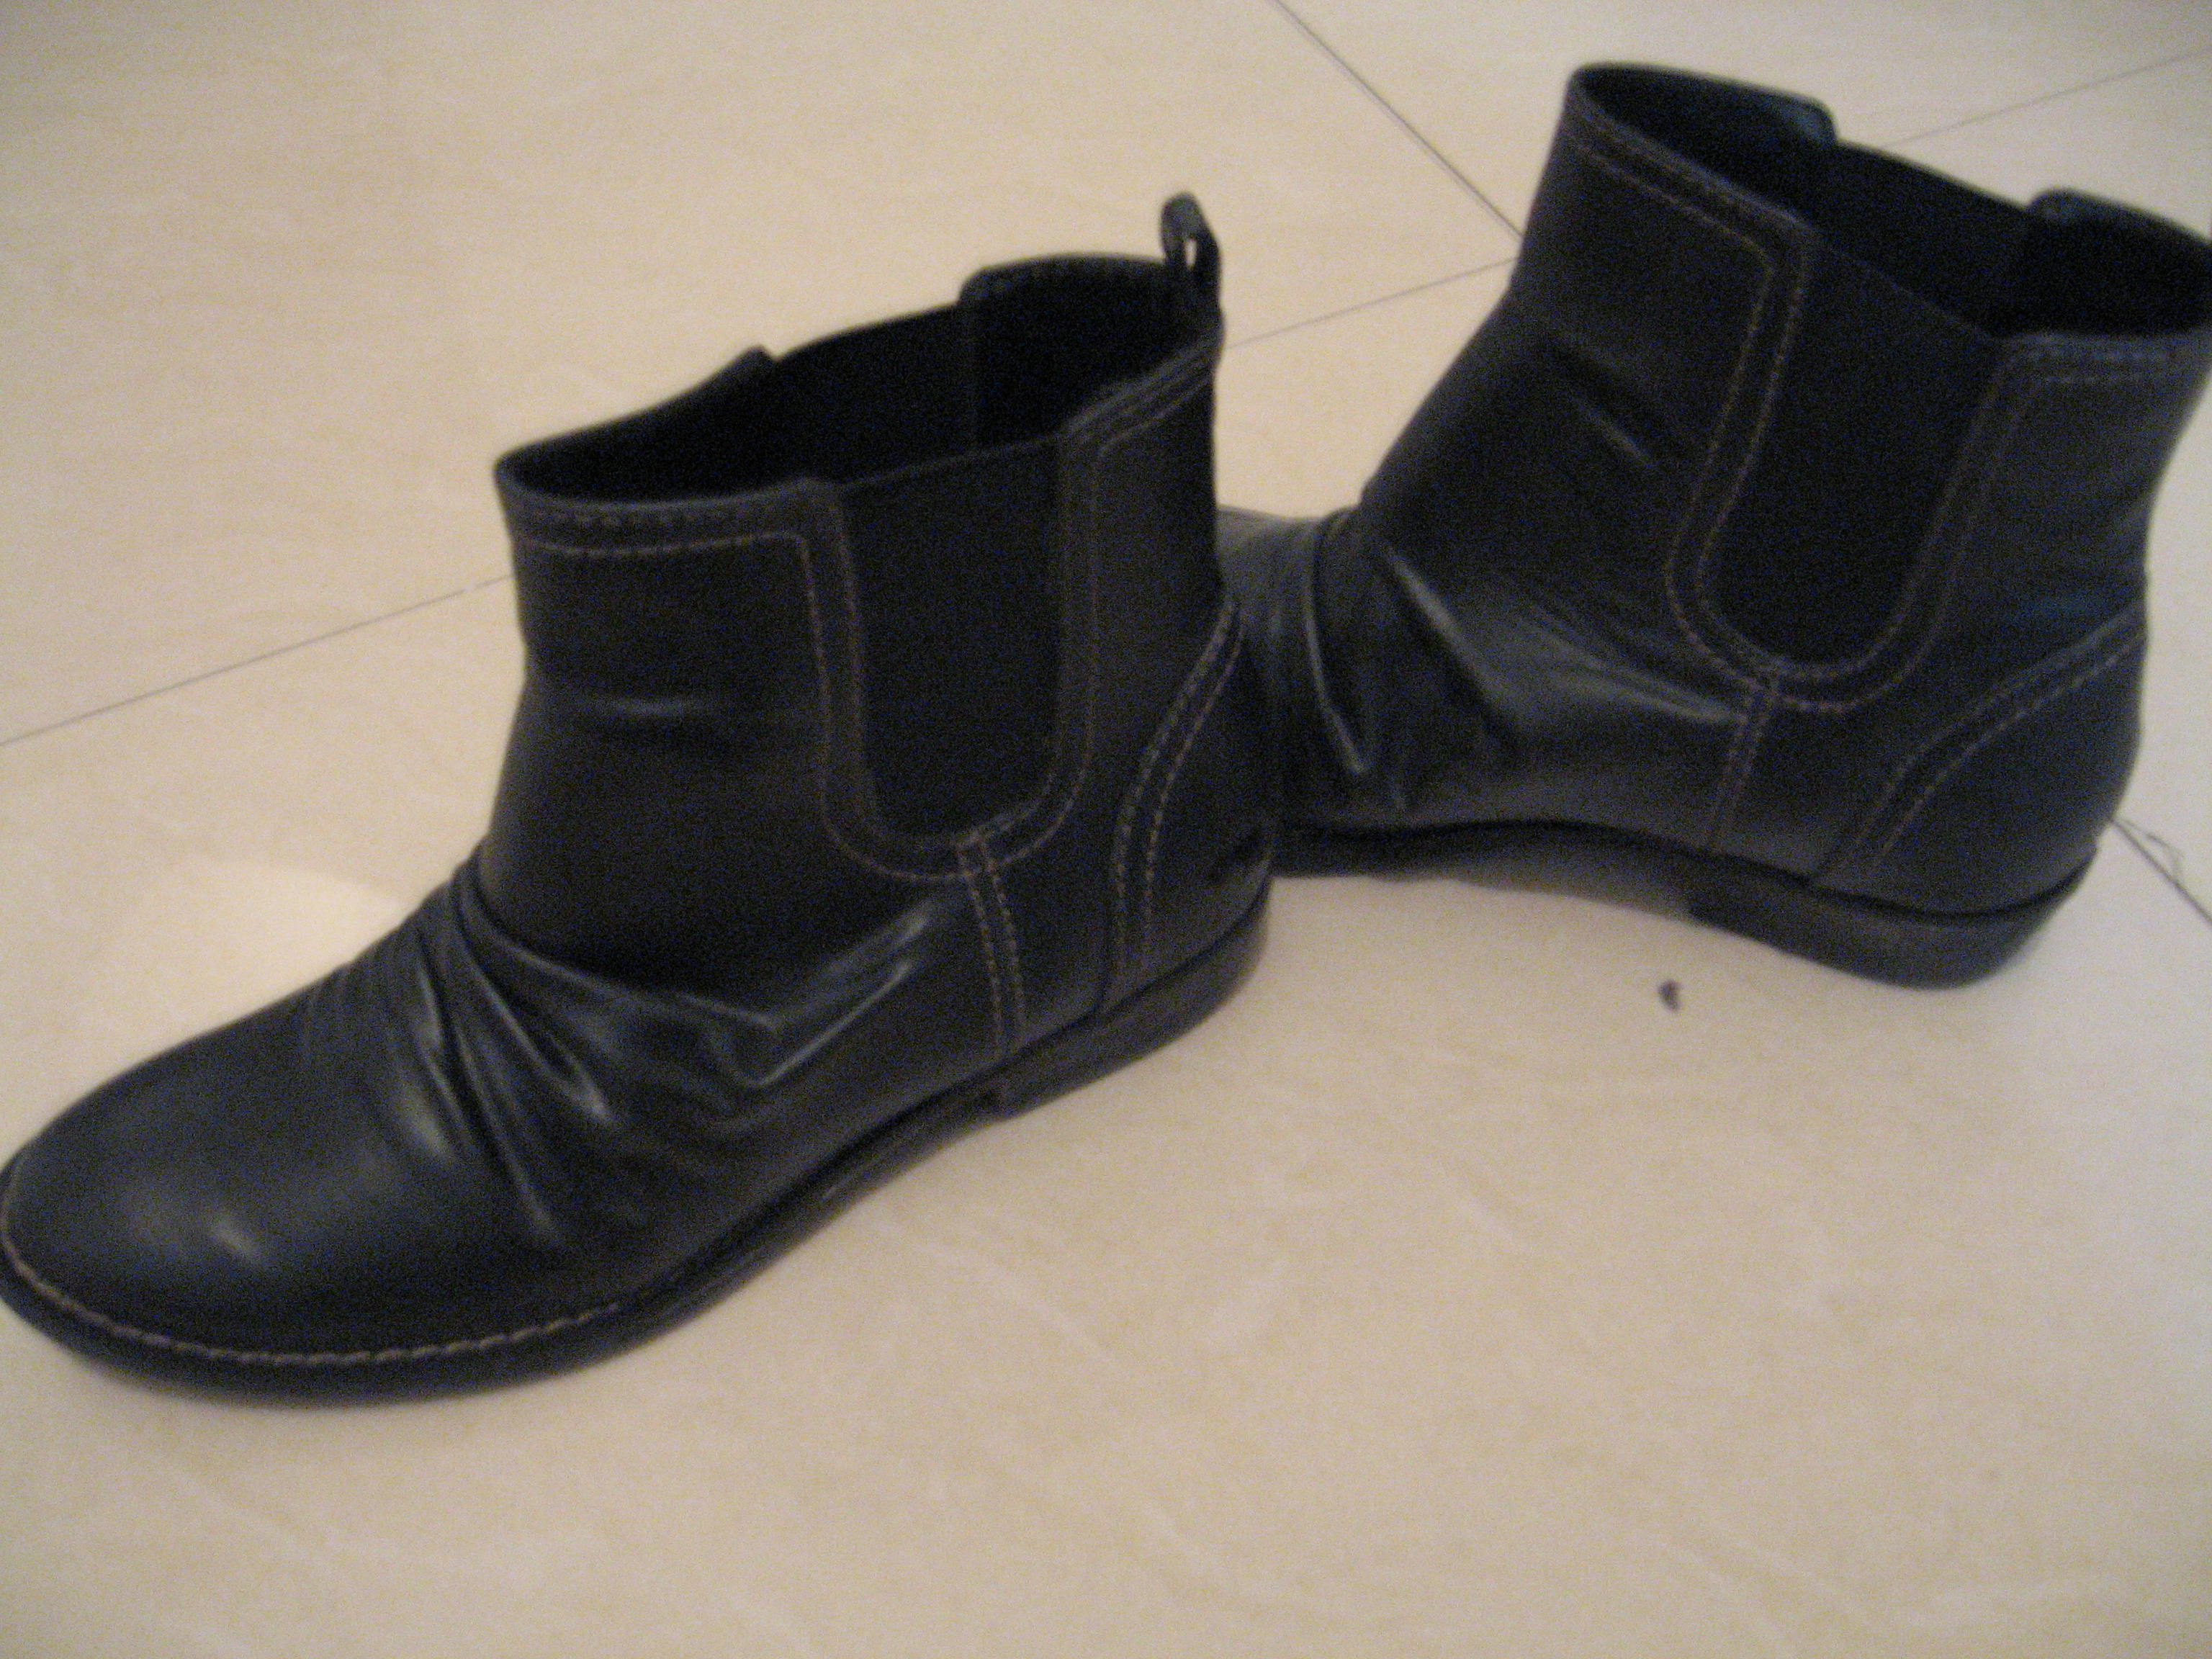 My new Rocket Dog chelsea boots